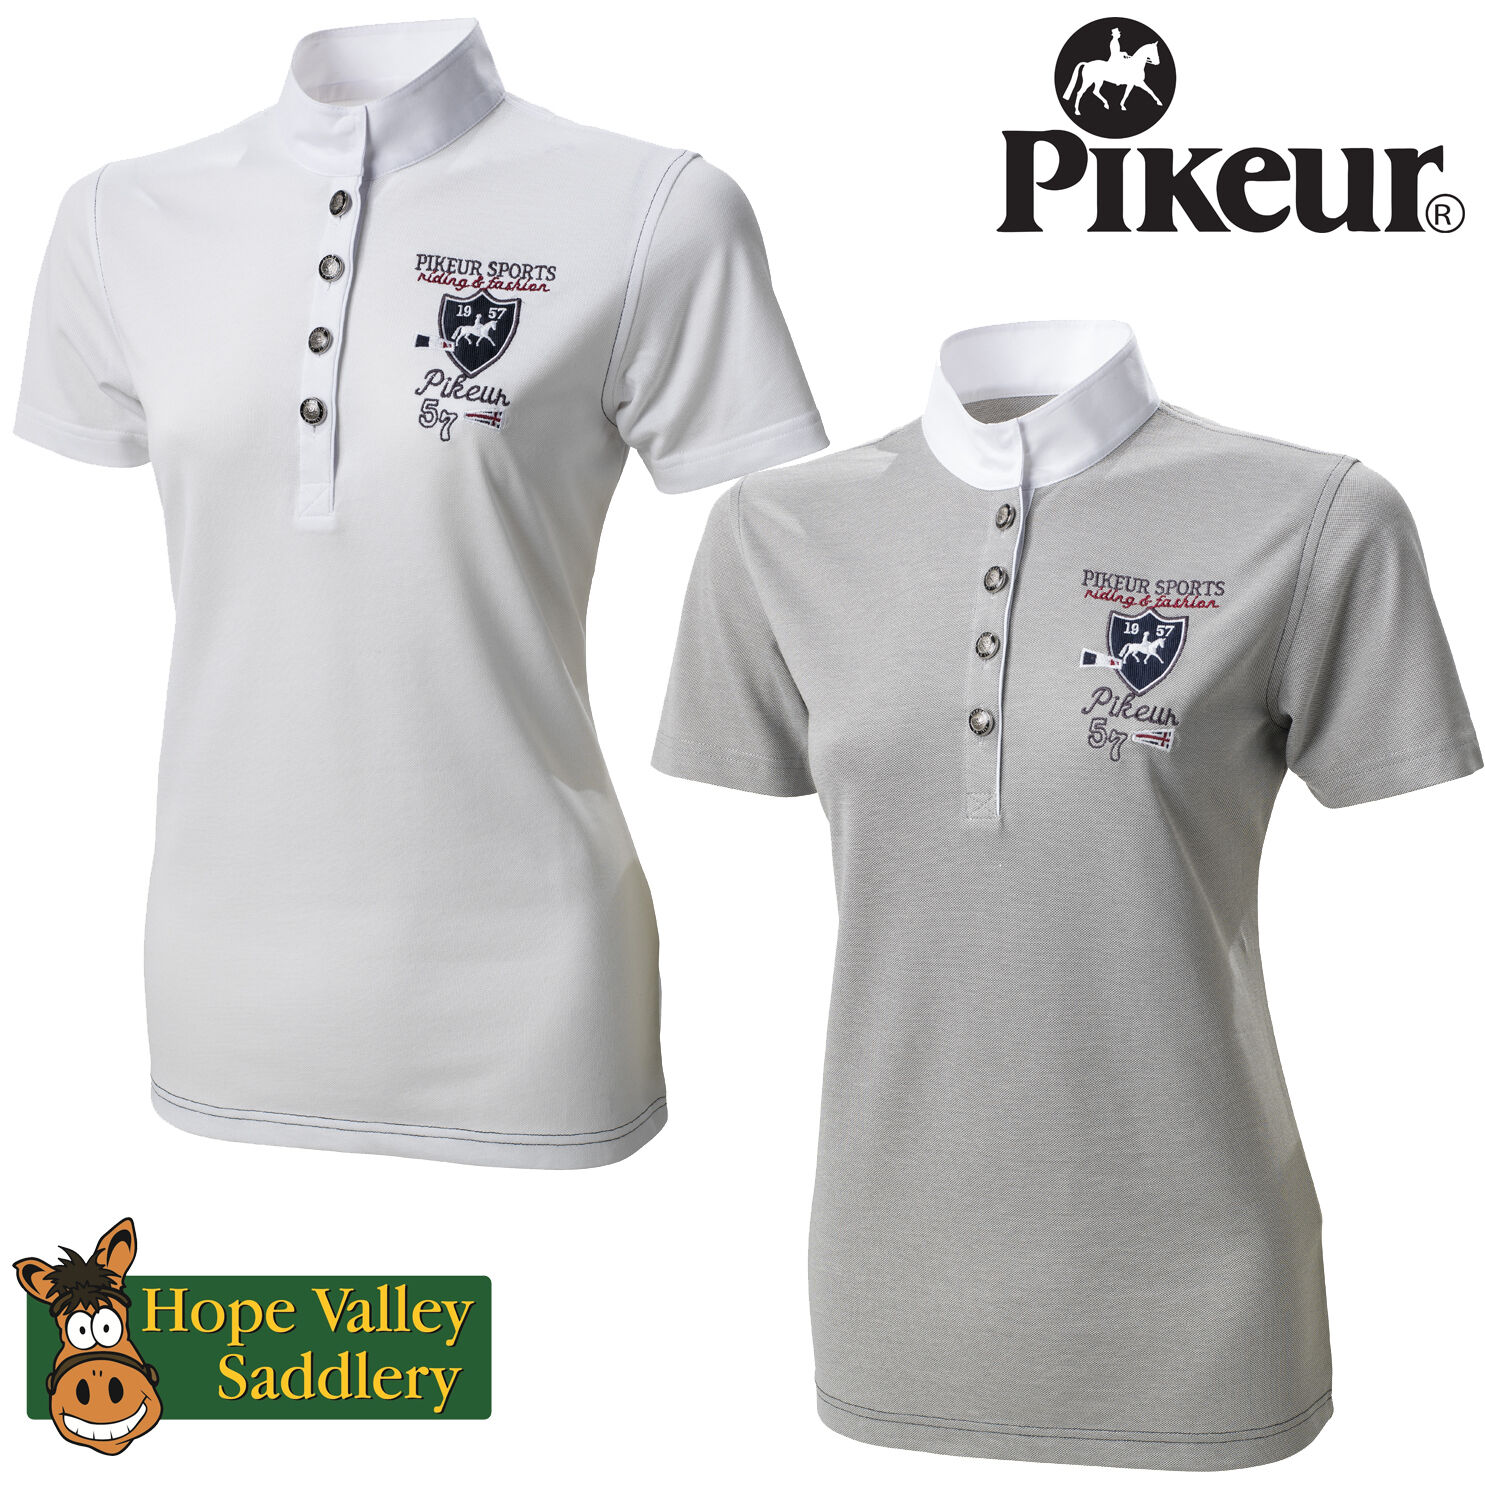 Pikeur Ladies Compeition Shirt (498) BNWT